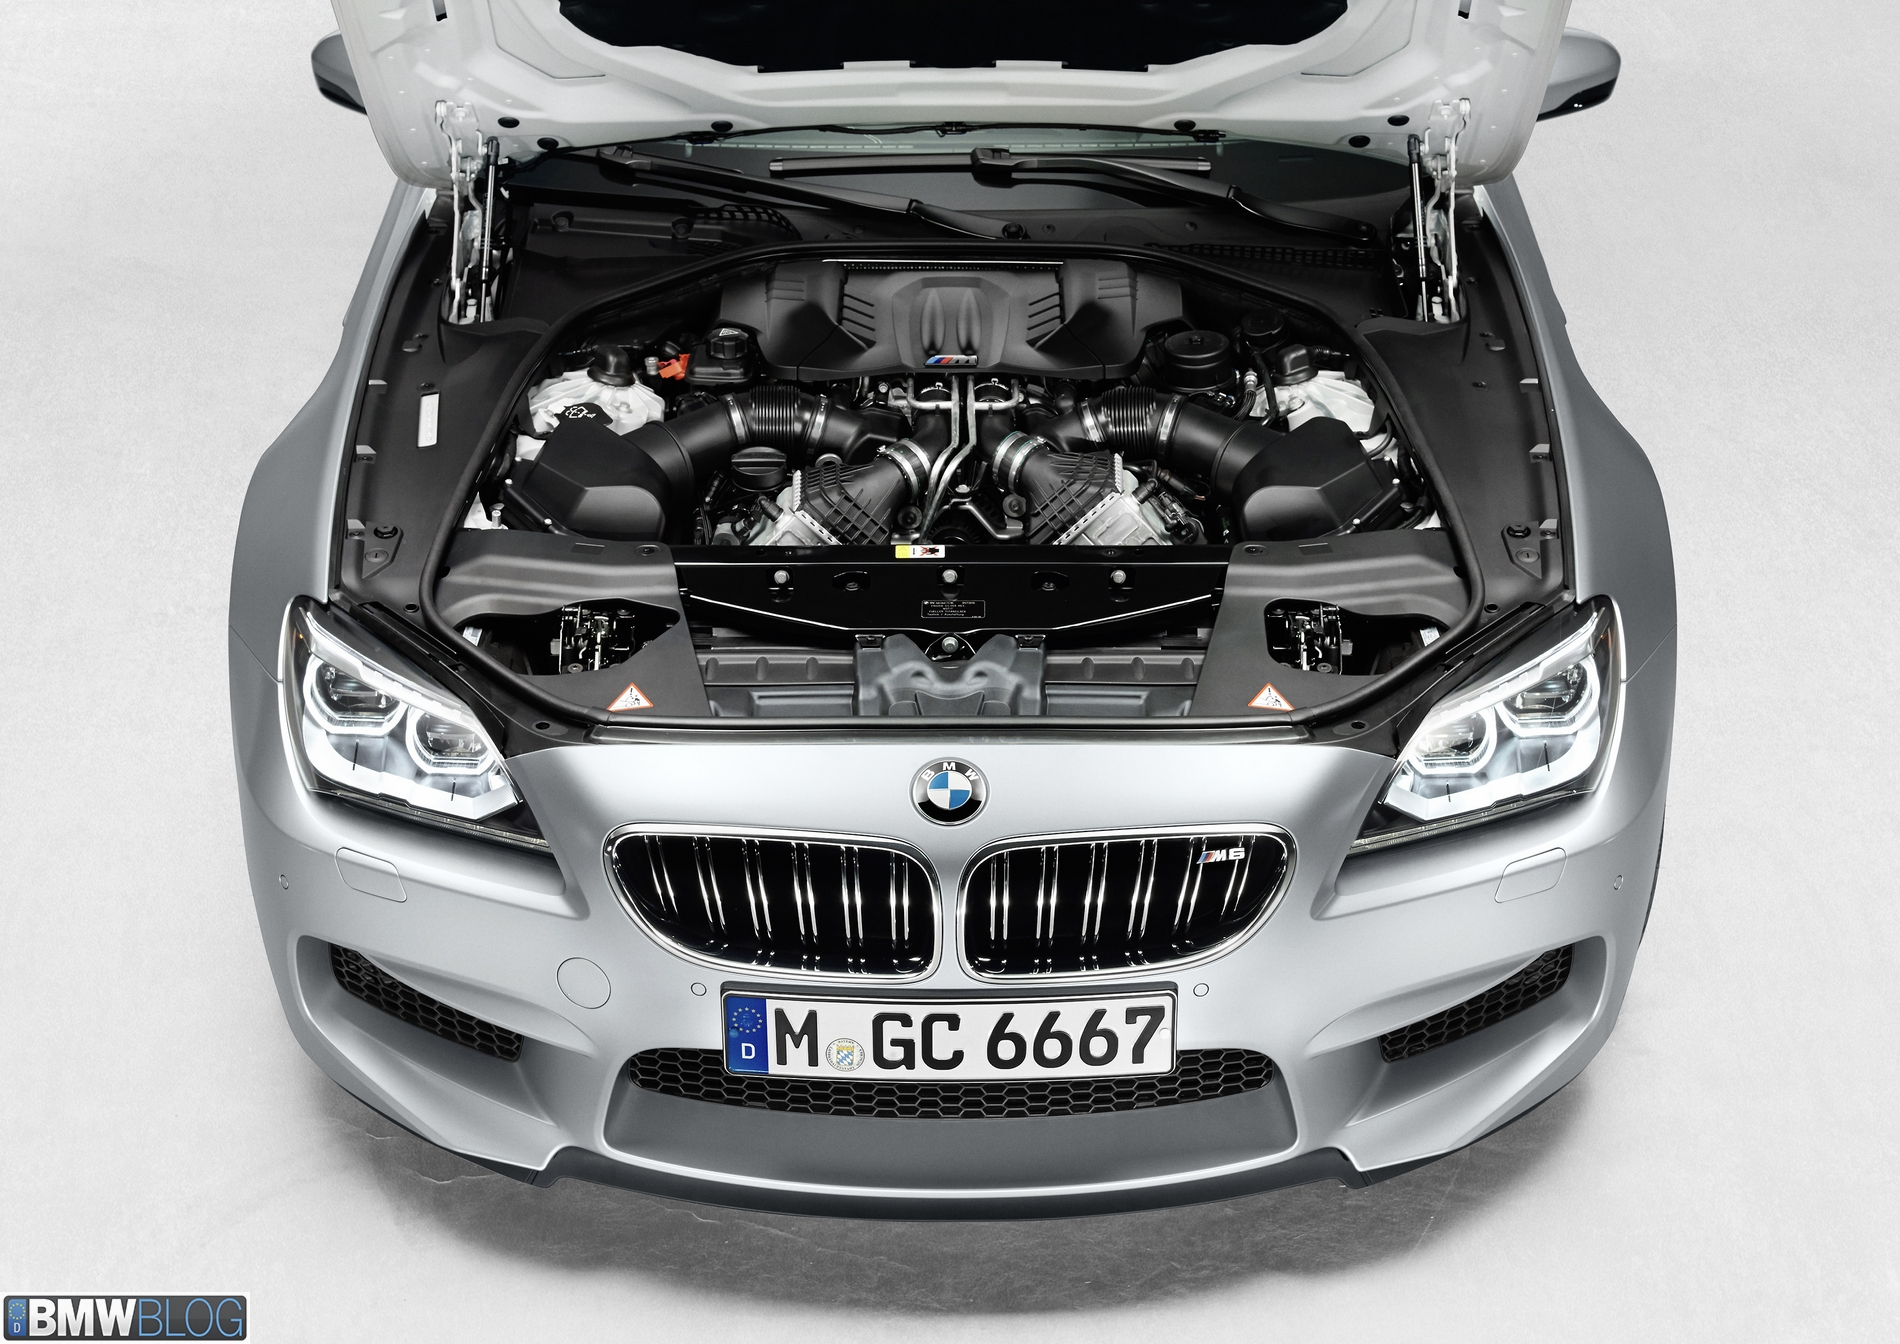 revisions to the BMW 6 Series Gran Coupe on which the car is based,